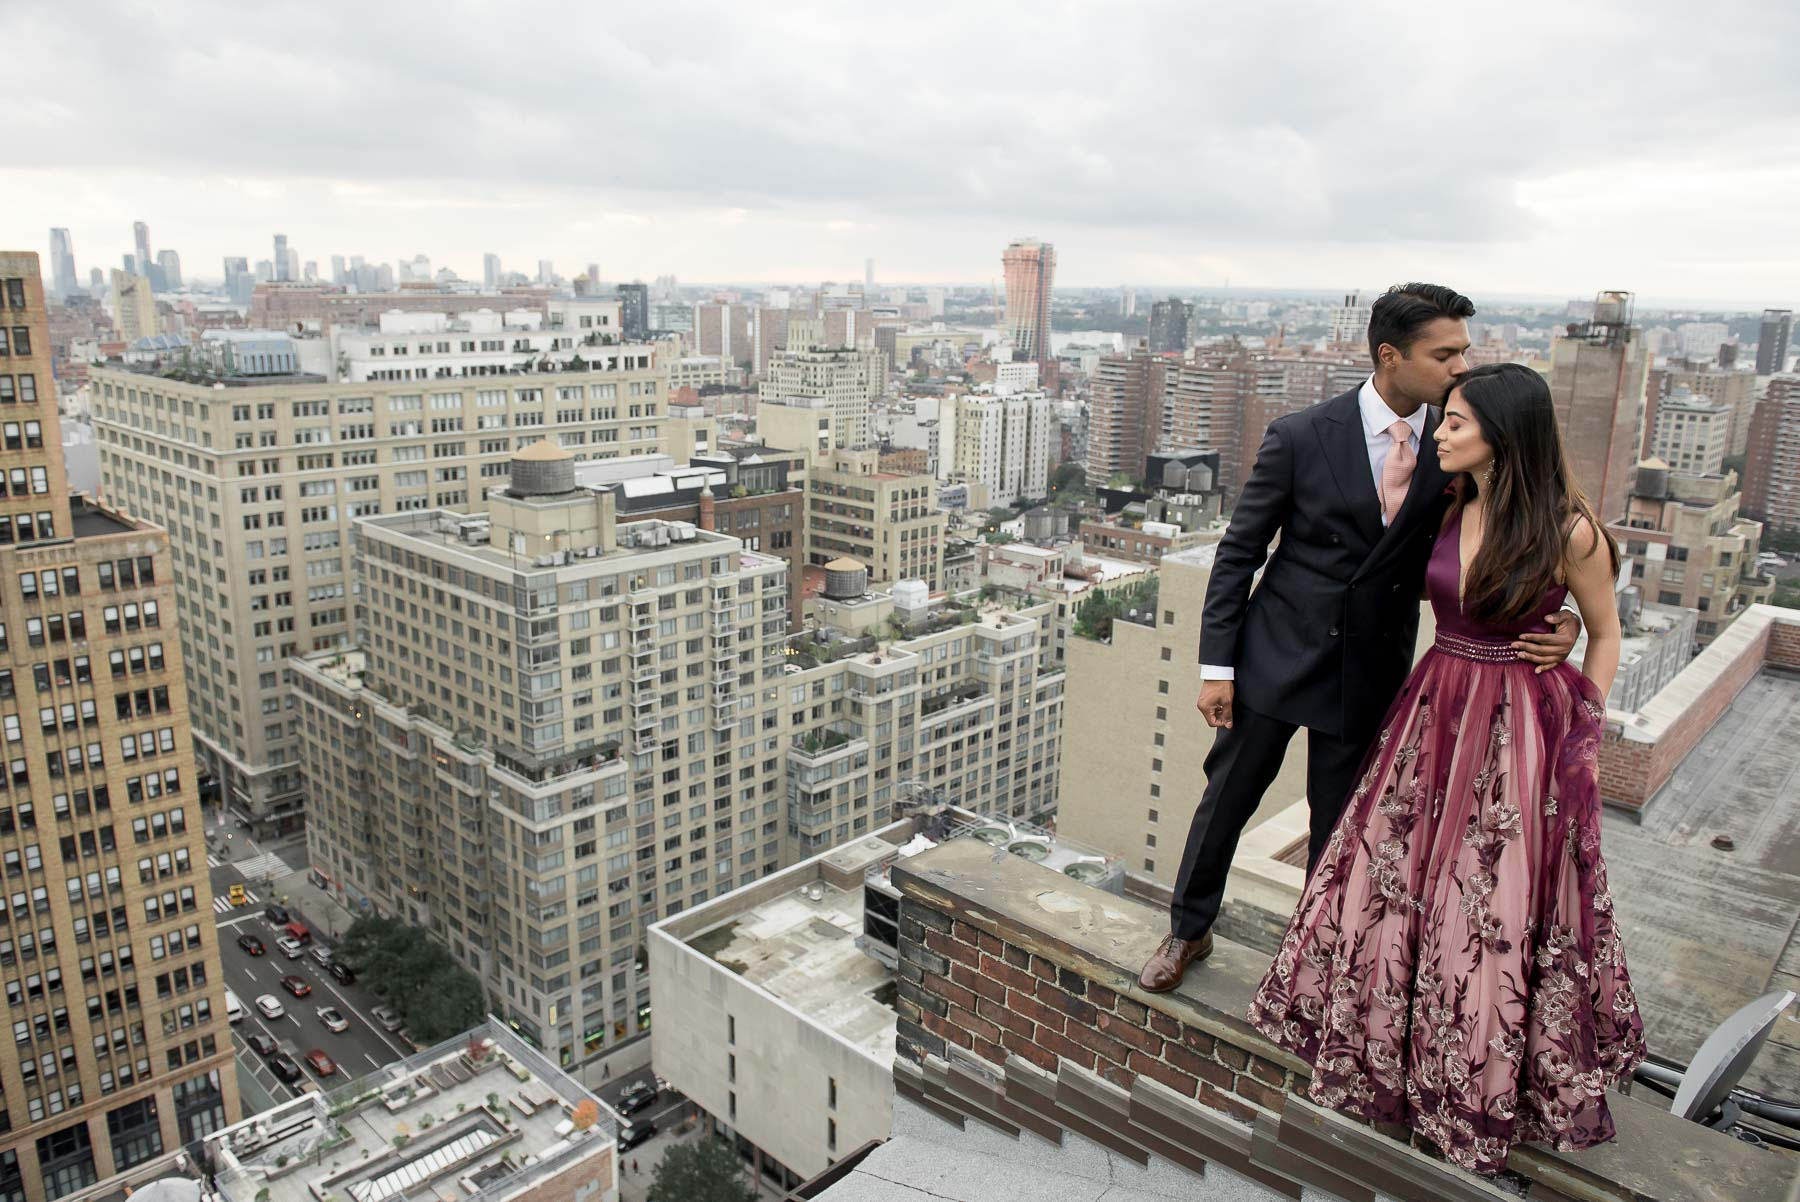 Couple on rooftop ledge against New York skyline - photo by Maloman Studios